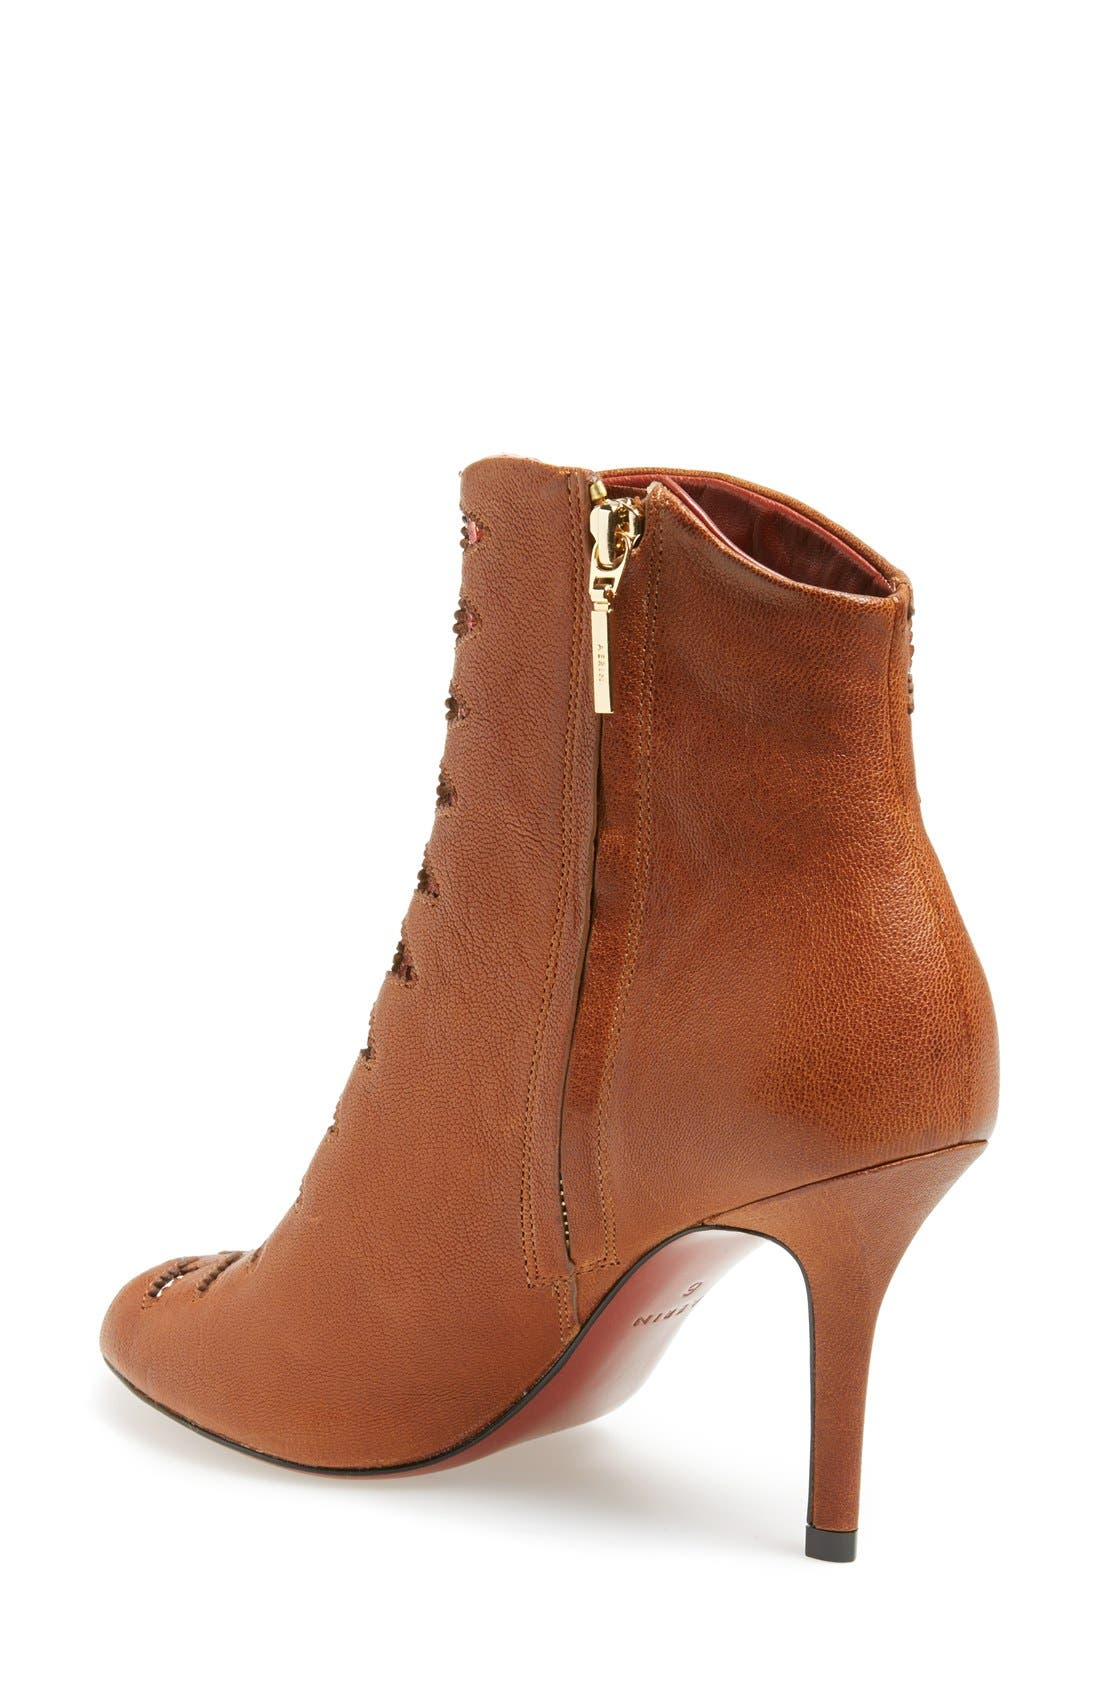 Alternate Image 2  - Aerin 'Carine' Peep Toe Leather Bootie (Women)